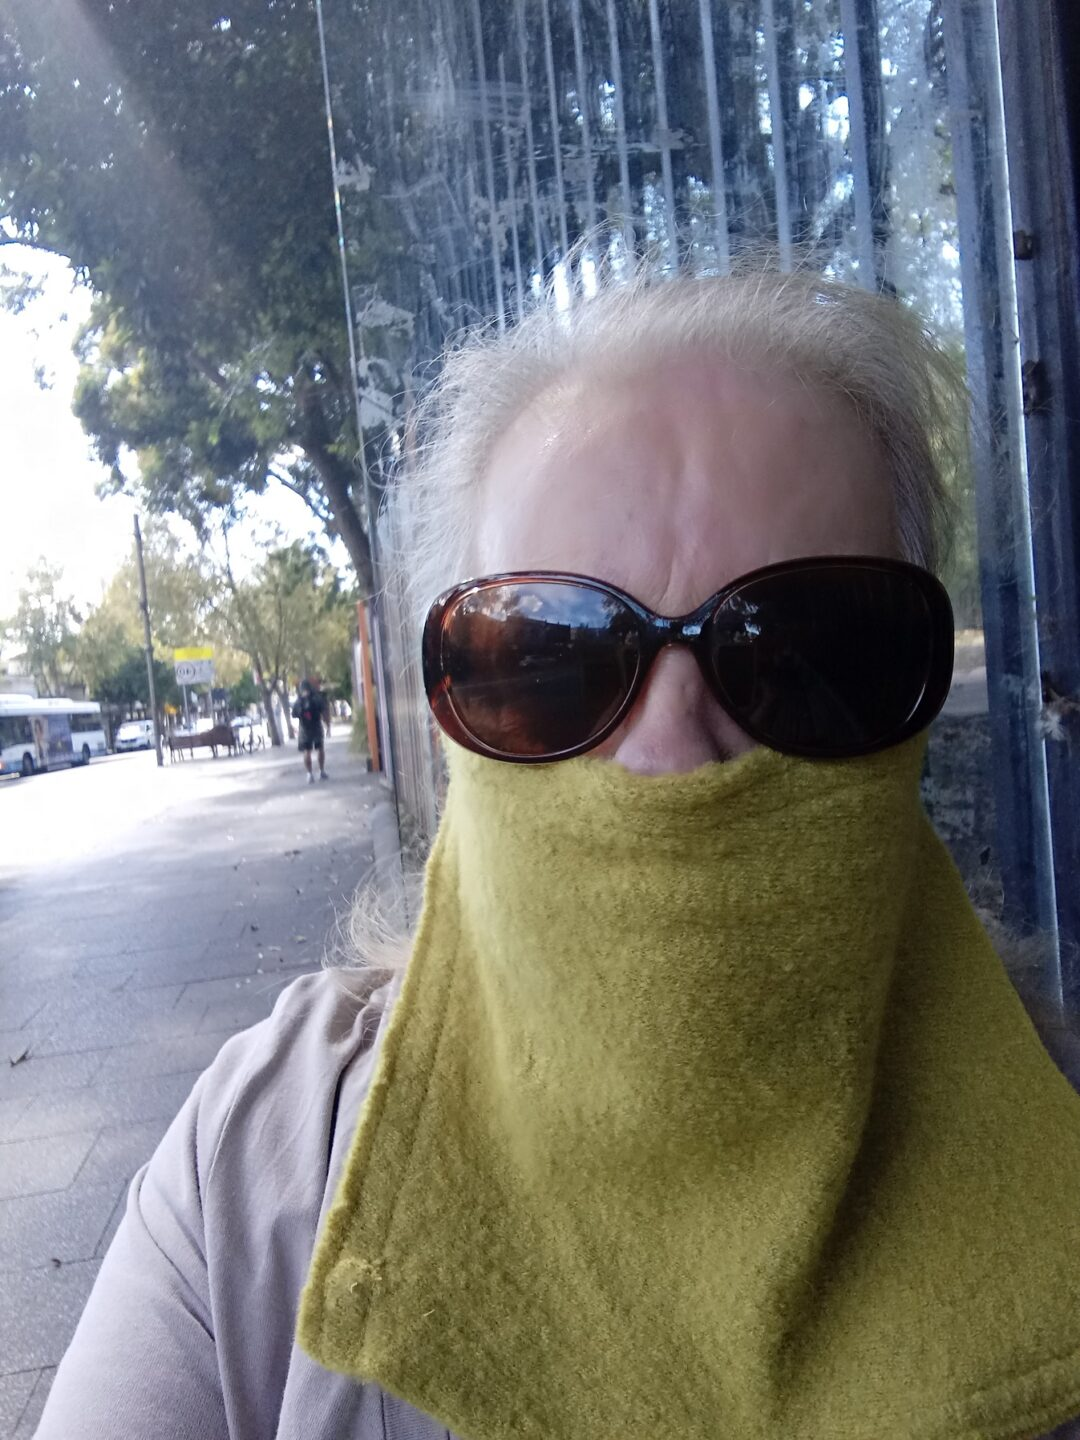 A woman with grey hair and sunglasses wearing a hand made mask.